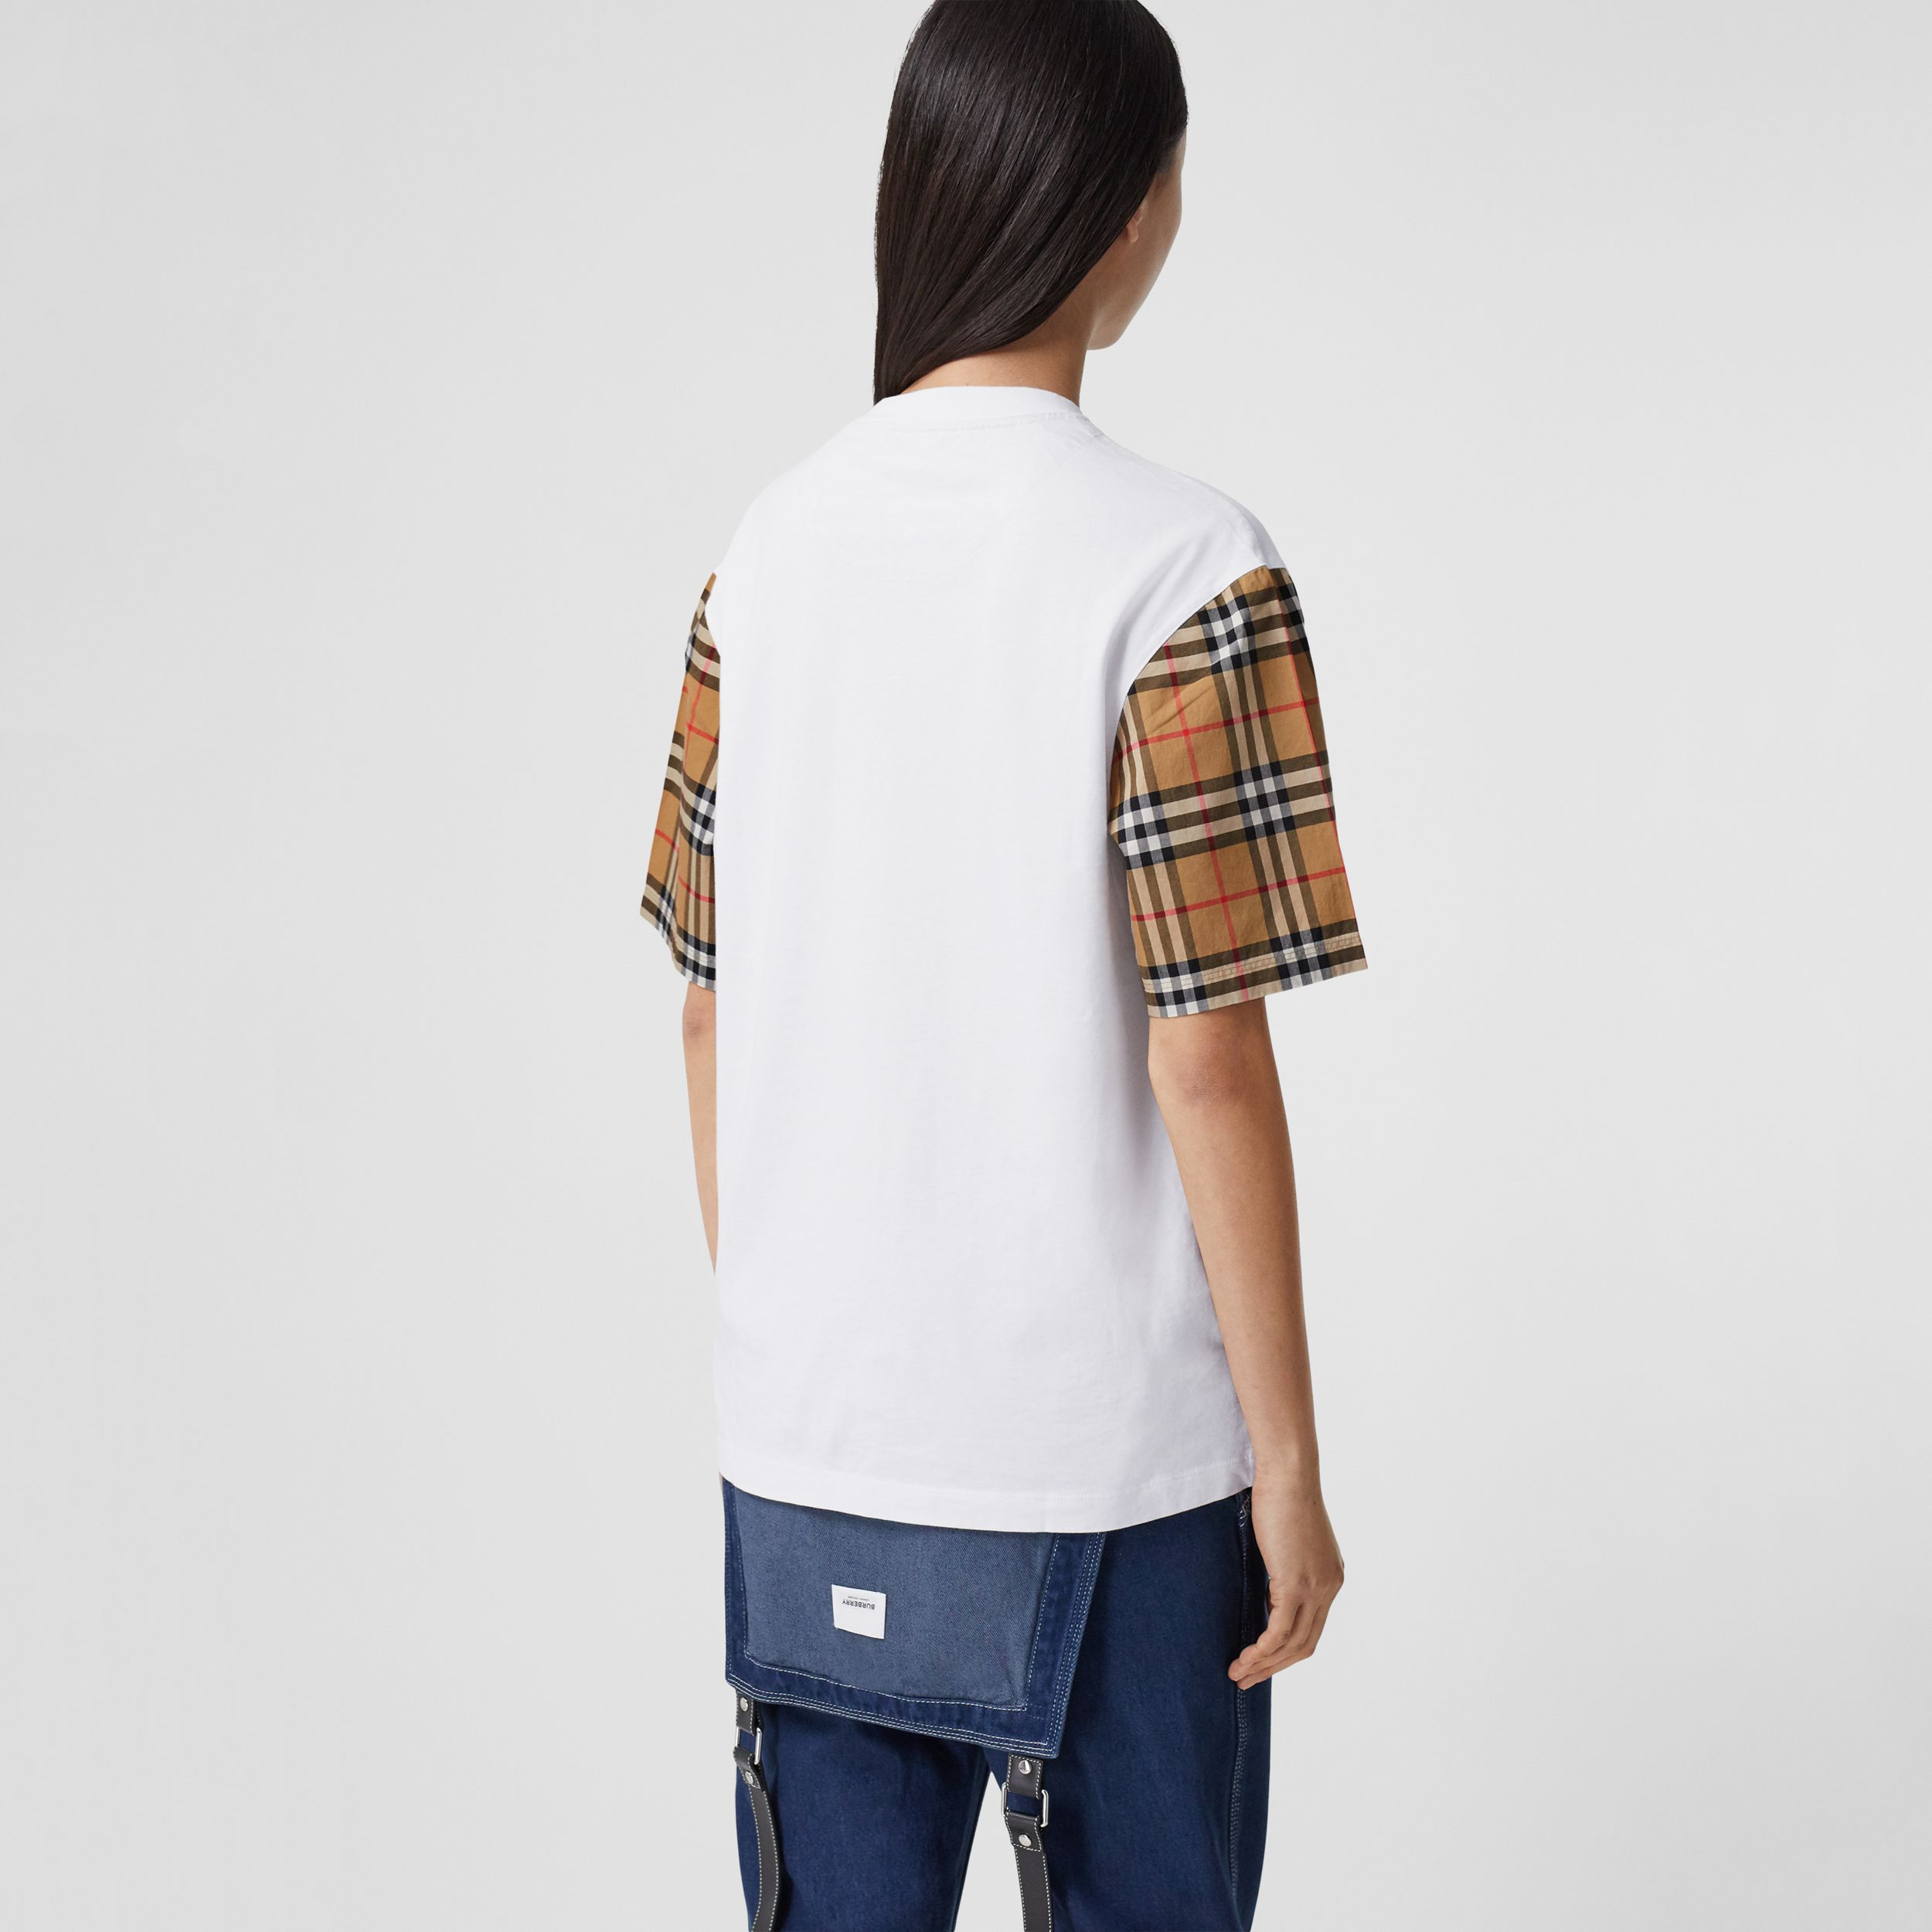 Vintage Check Sleeve Cotton T-shirt in White - Women | Burberry Australia - 3